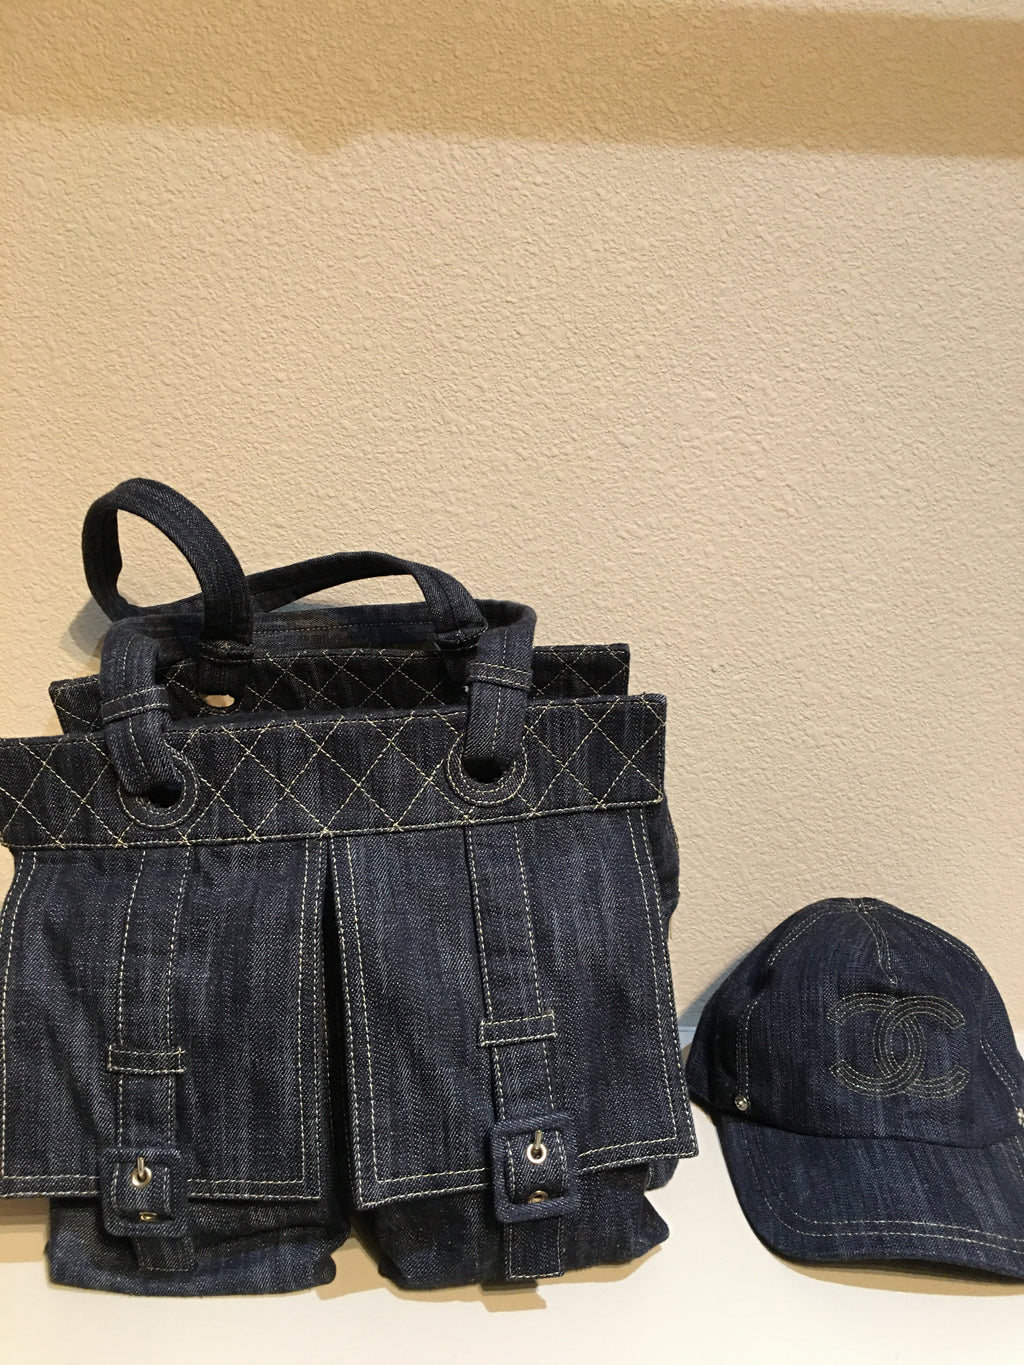 Chanel Denim Handbag